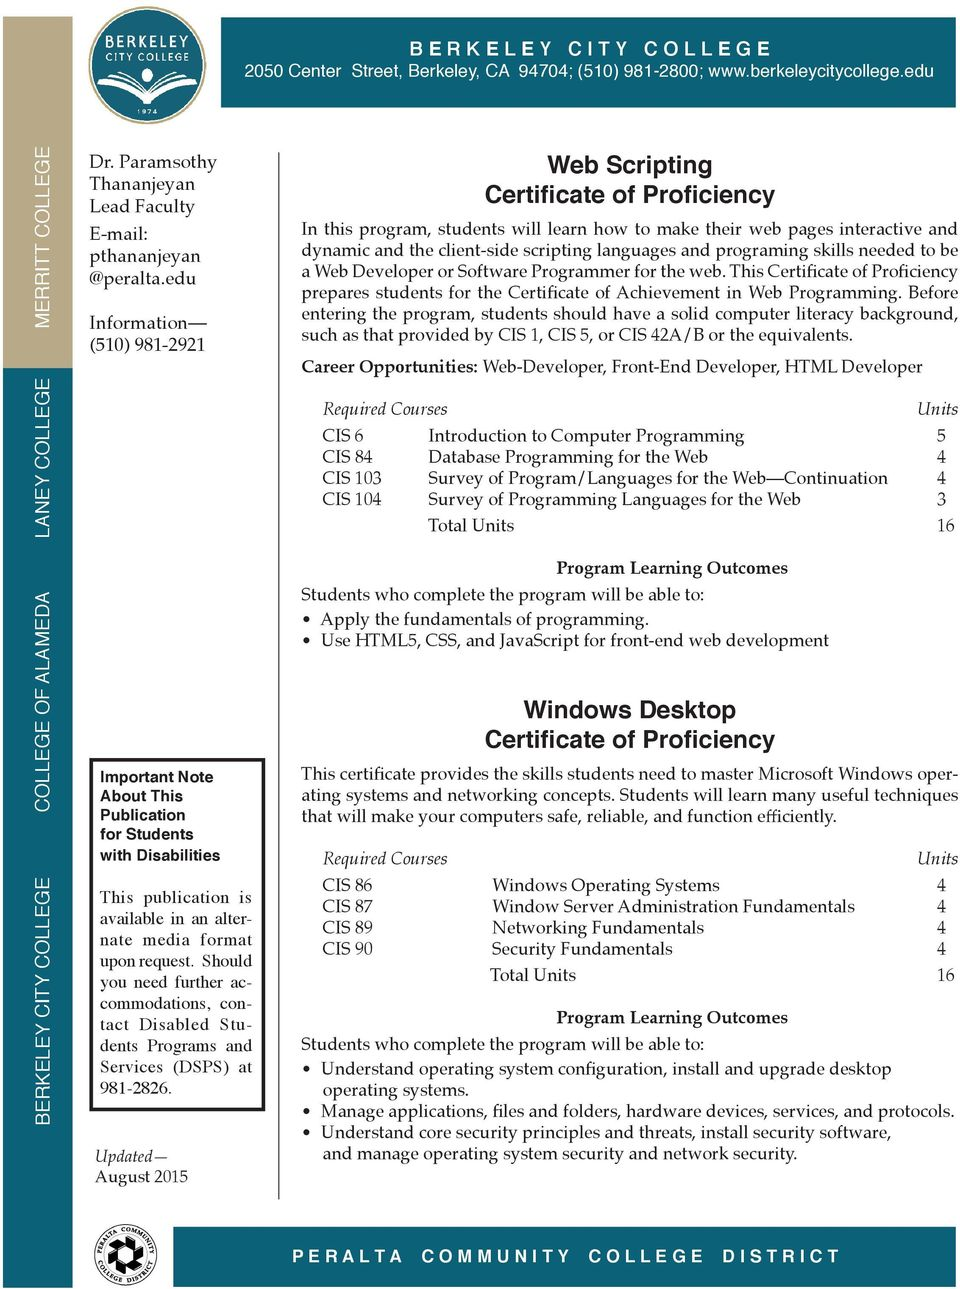 Before entering the program, students should have a solid computer literacy background, such as that provided by CIS 1, CIS 5, or CIS 42A/B or the equivalents.